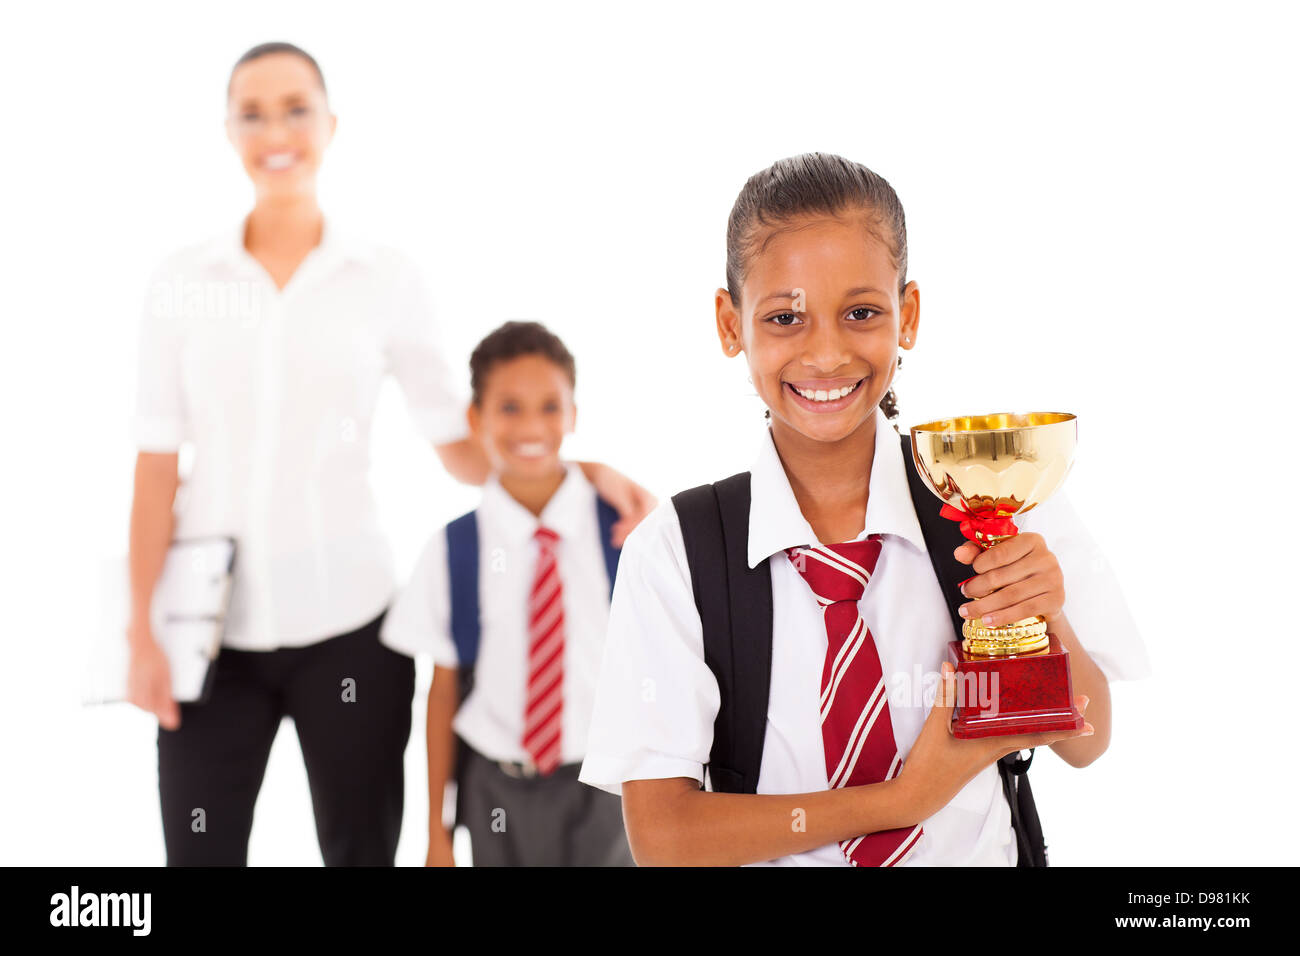 schoolgirl holding trophy in front of teacher and classmate - Stock Image